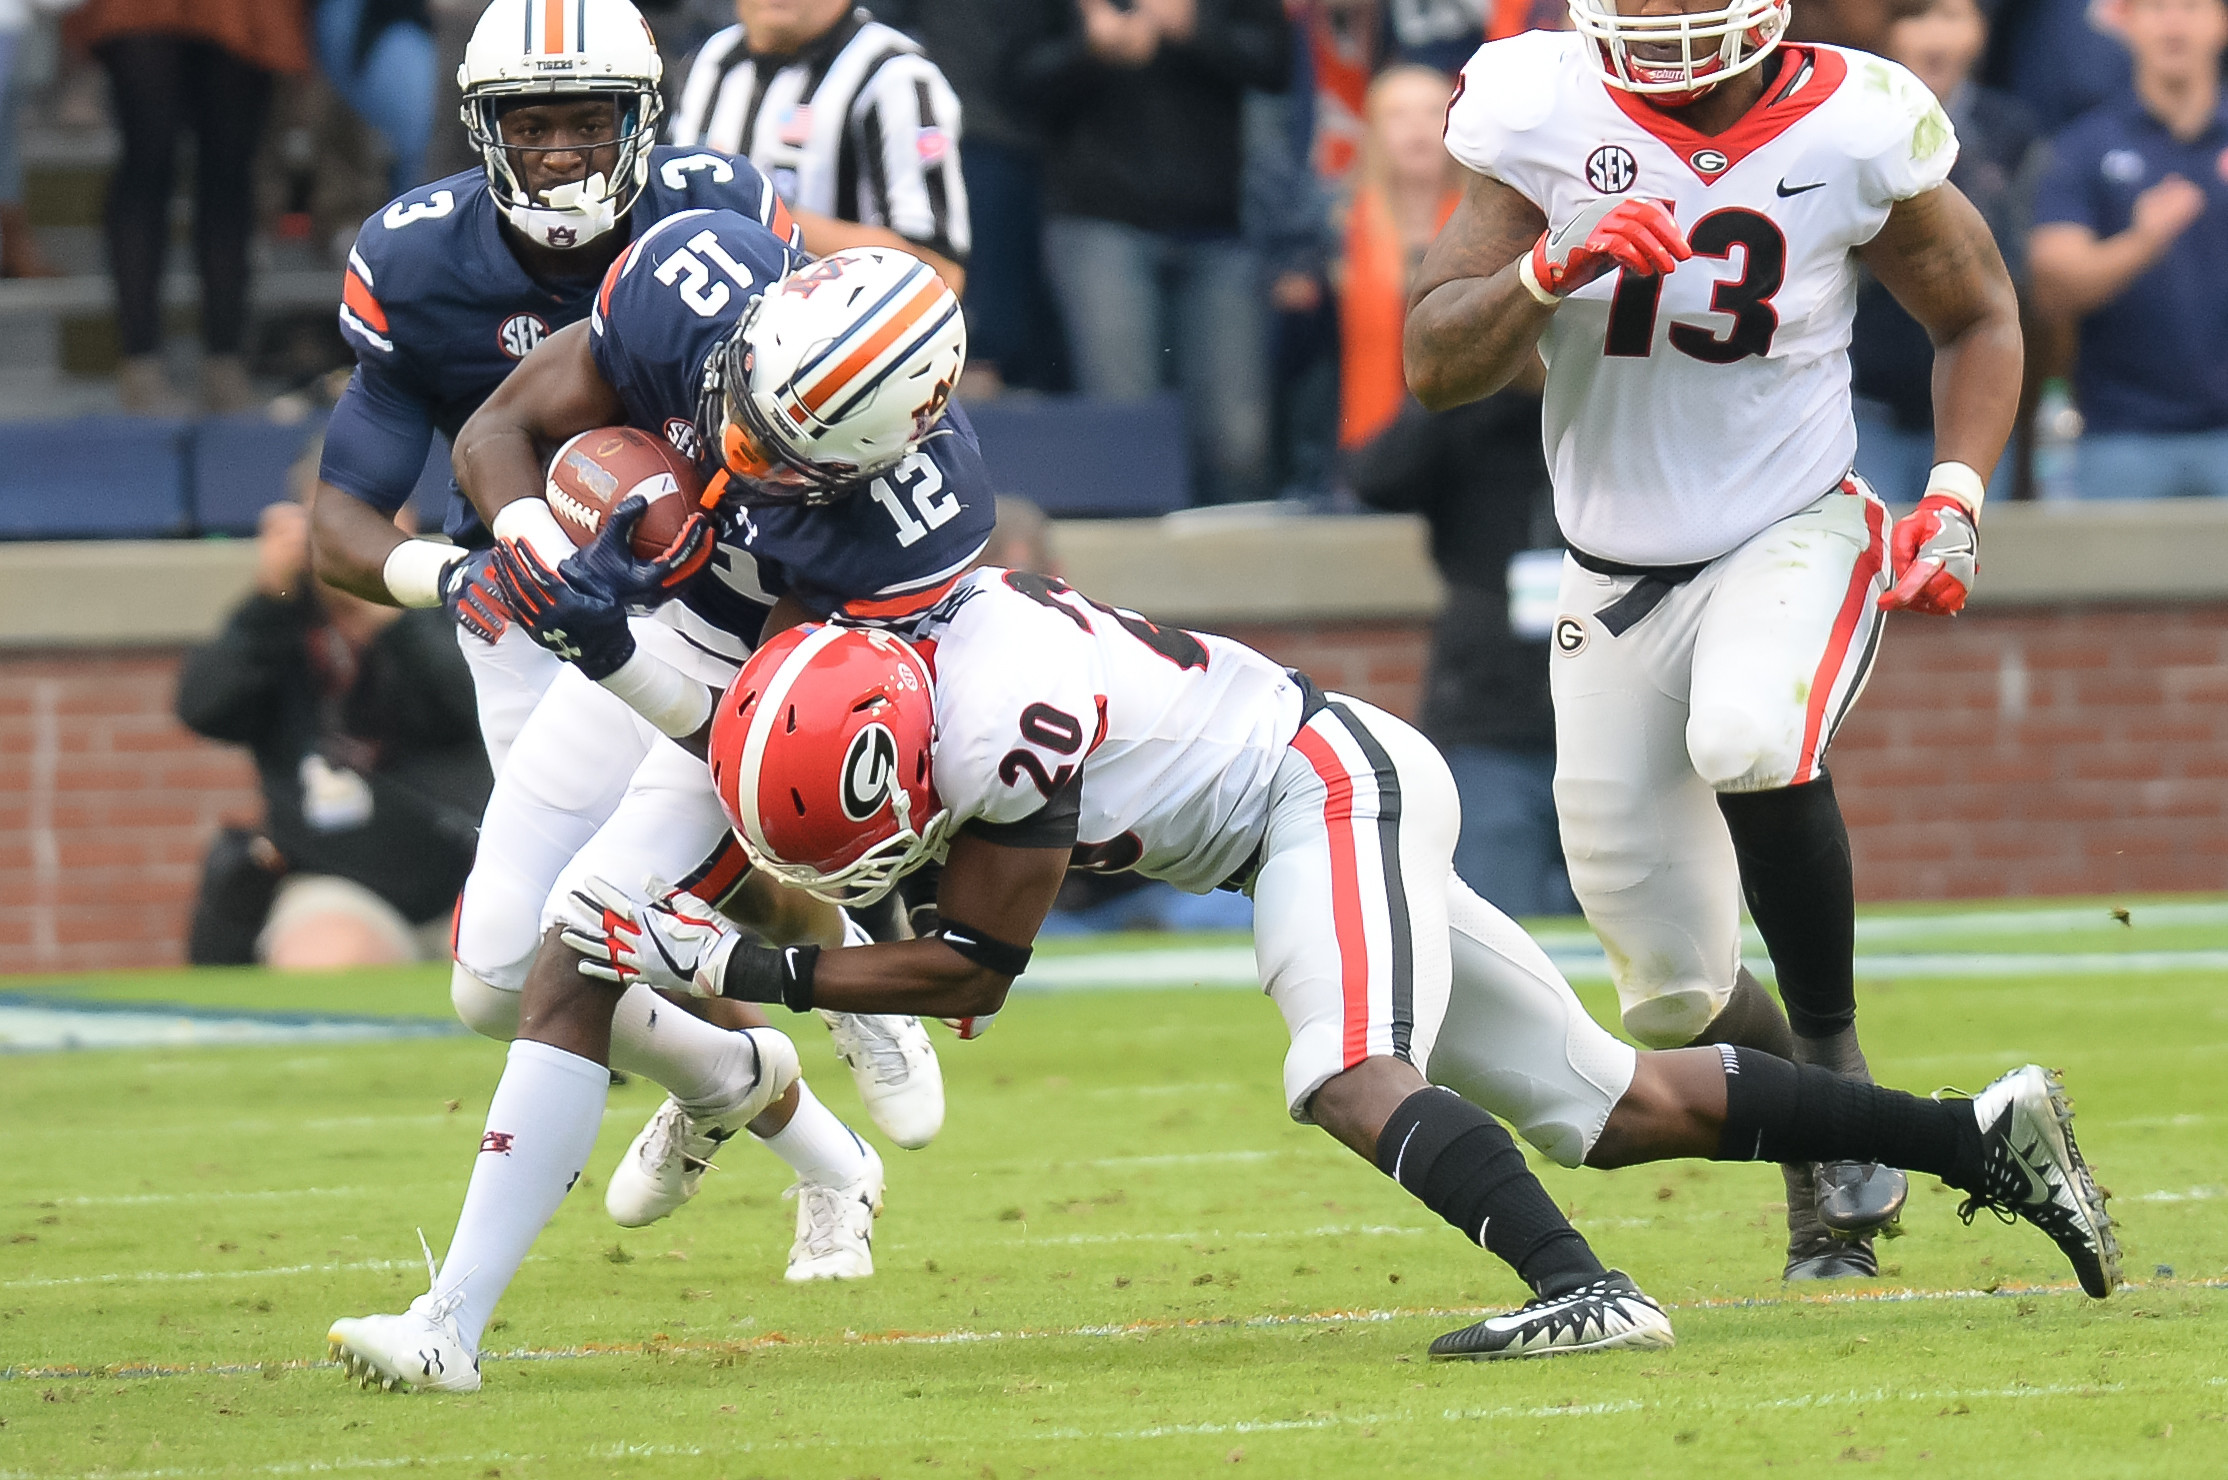 Auburn Tigers wide receiver Eli Stove (12) is tackled by Georgia Bulldogs defensive back J.R. Reed (20) during the first half of Saturday's game, at Jordan-Hare Stadium.